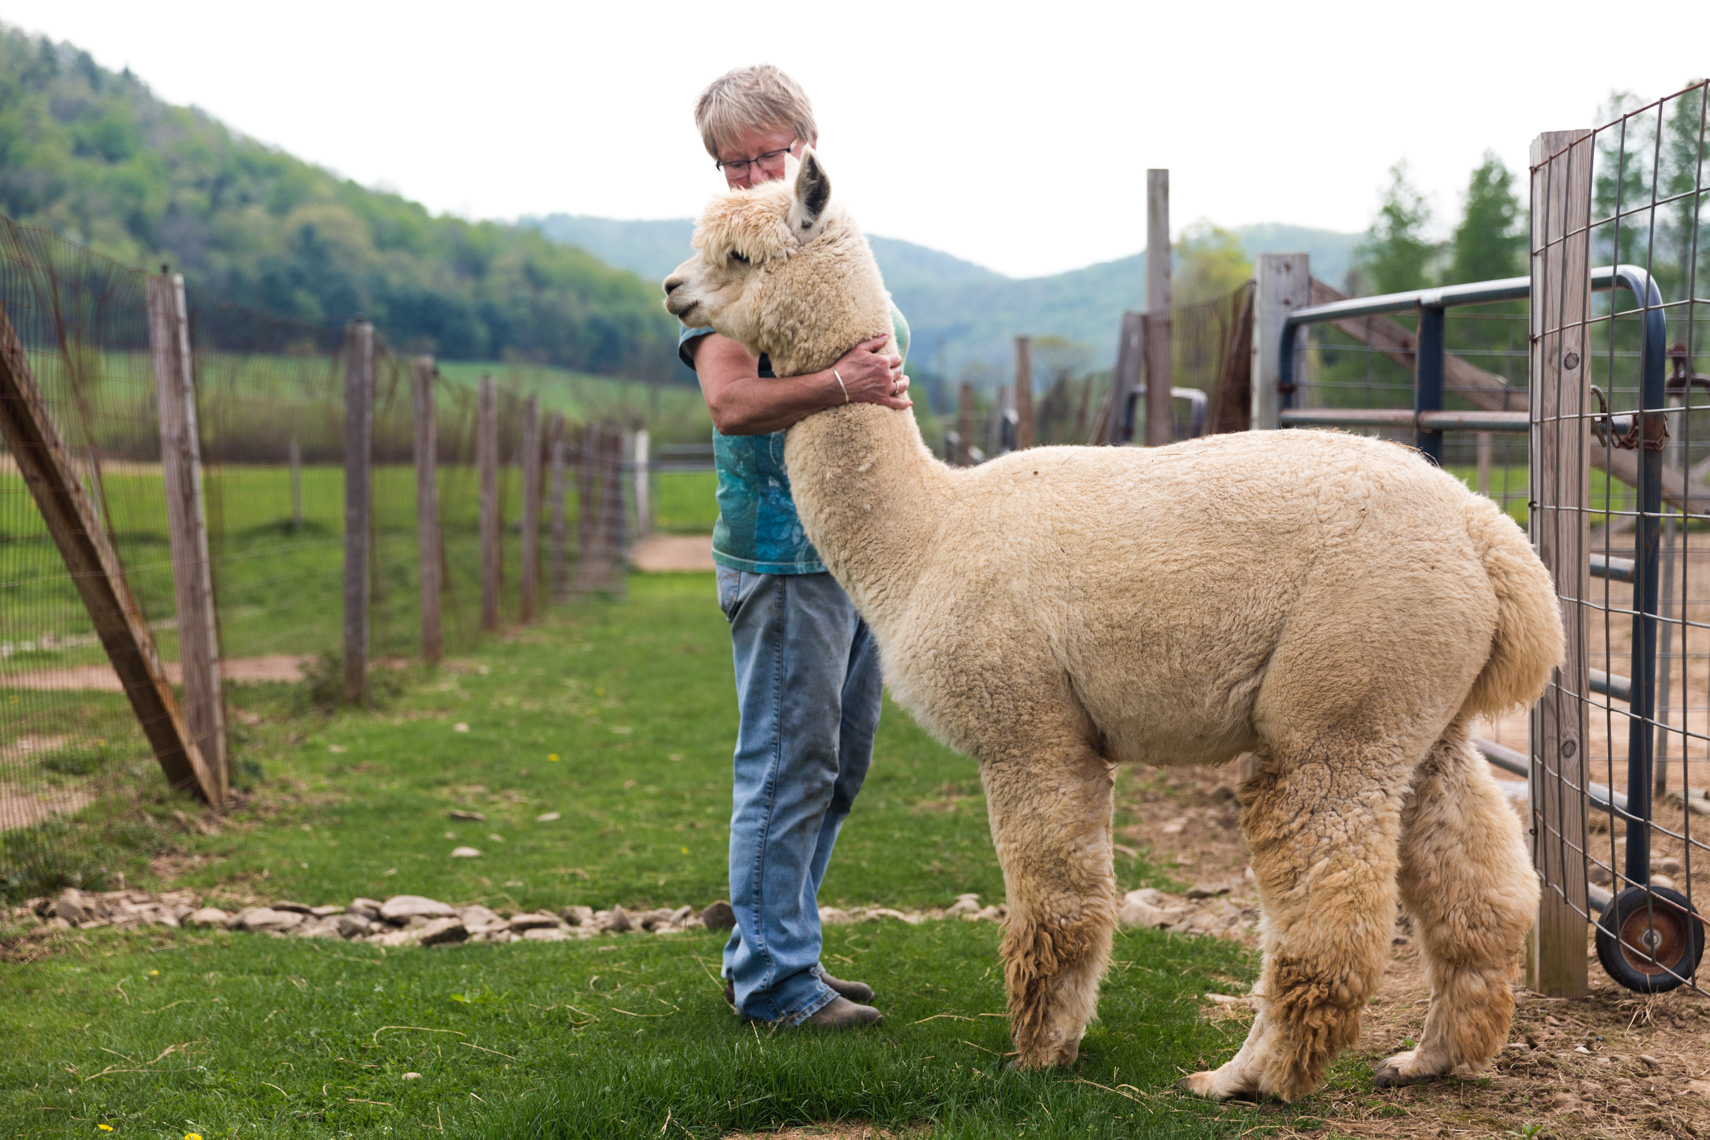 Owner and Alpaca portrait